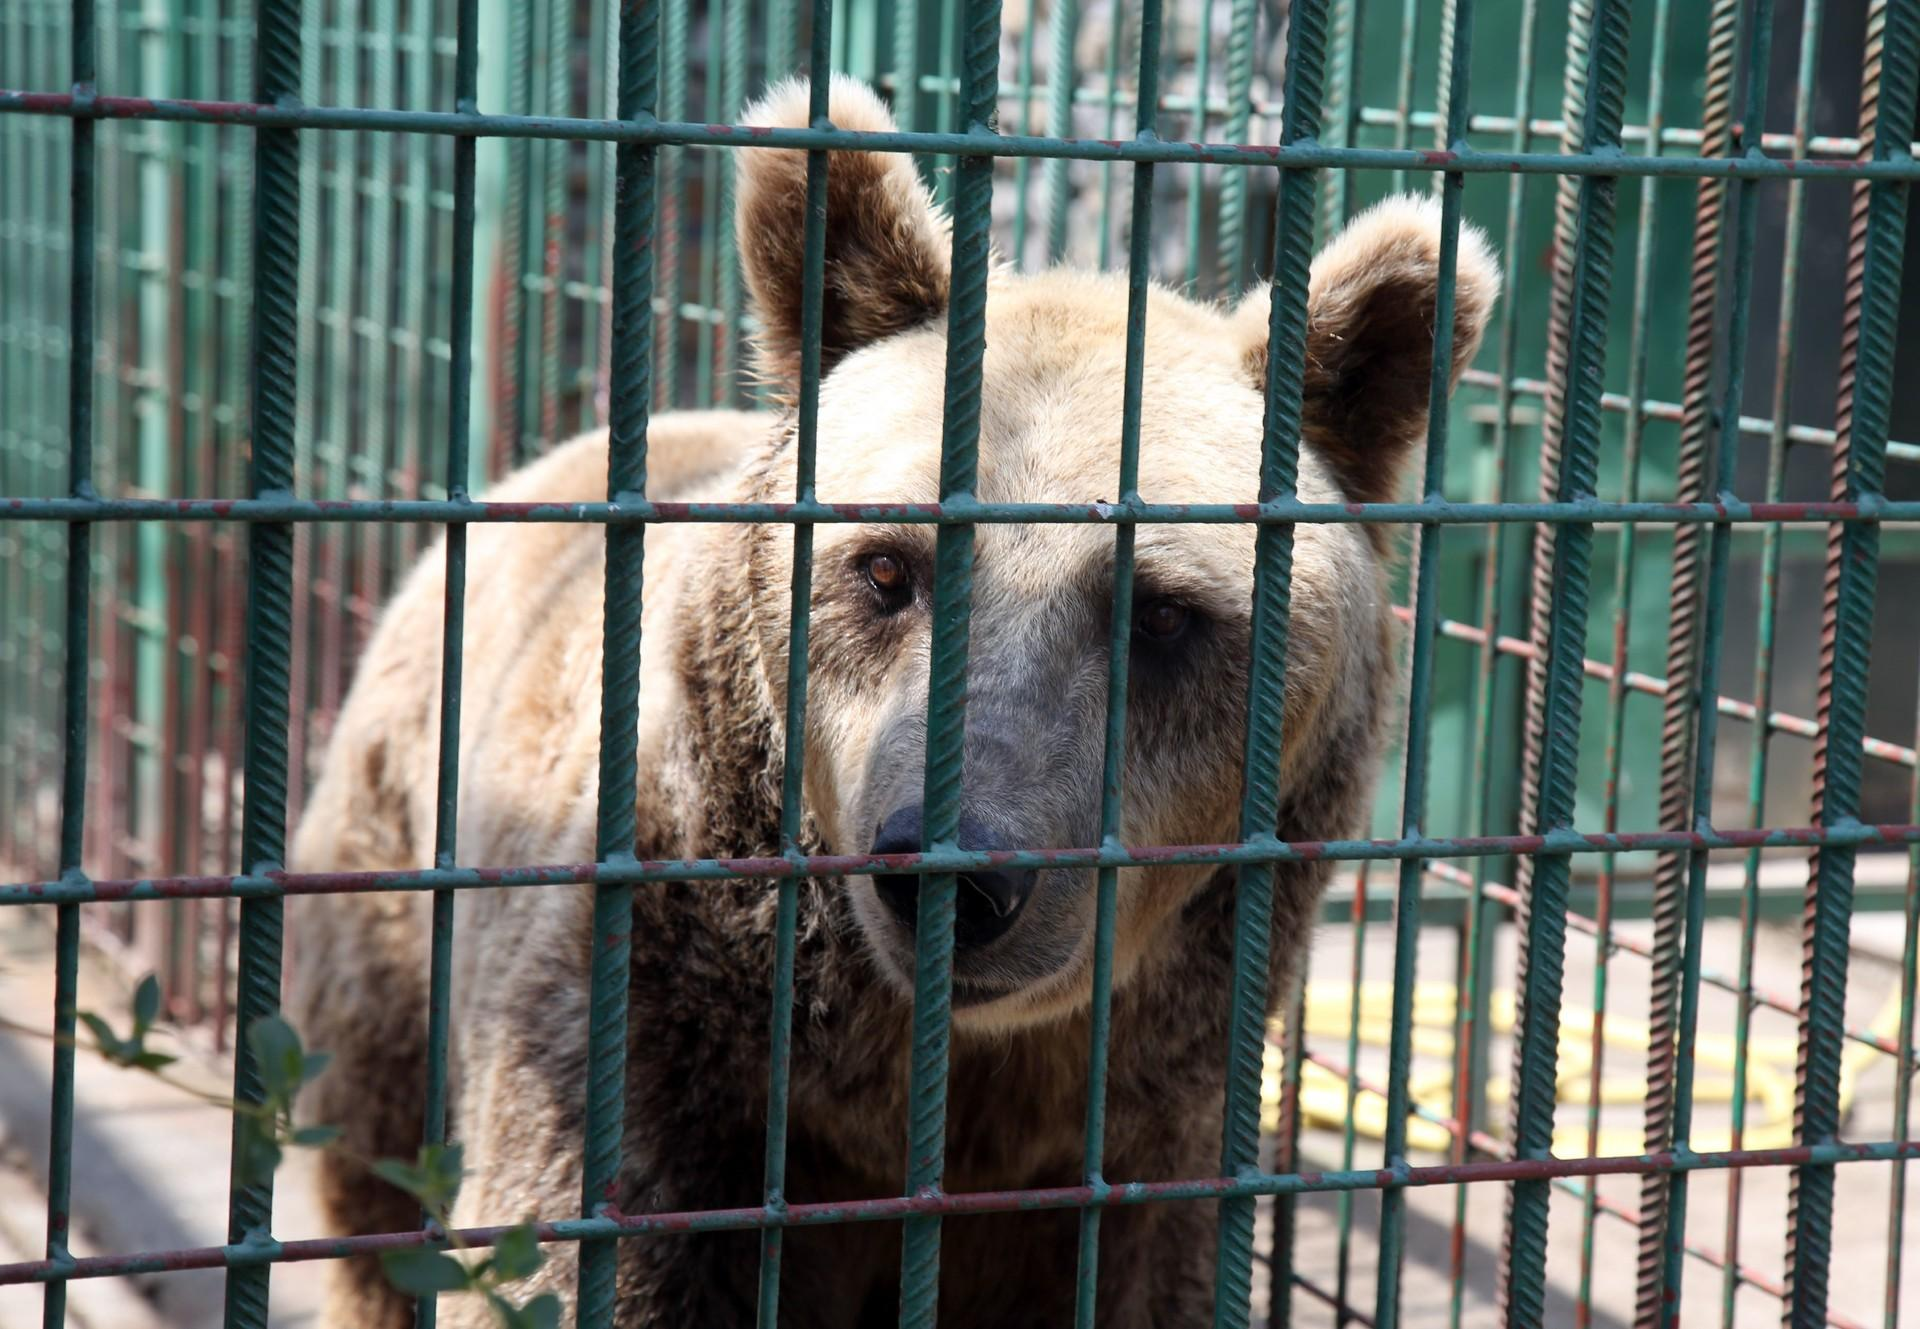 Bear in cage